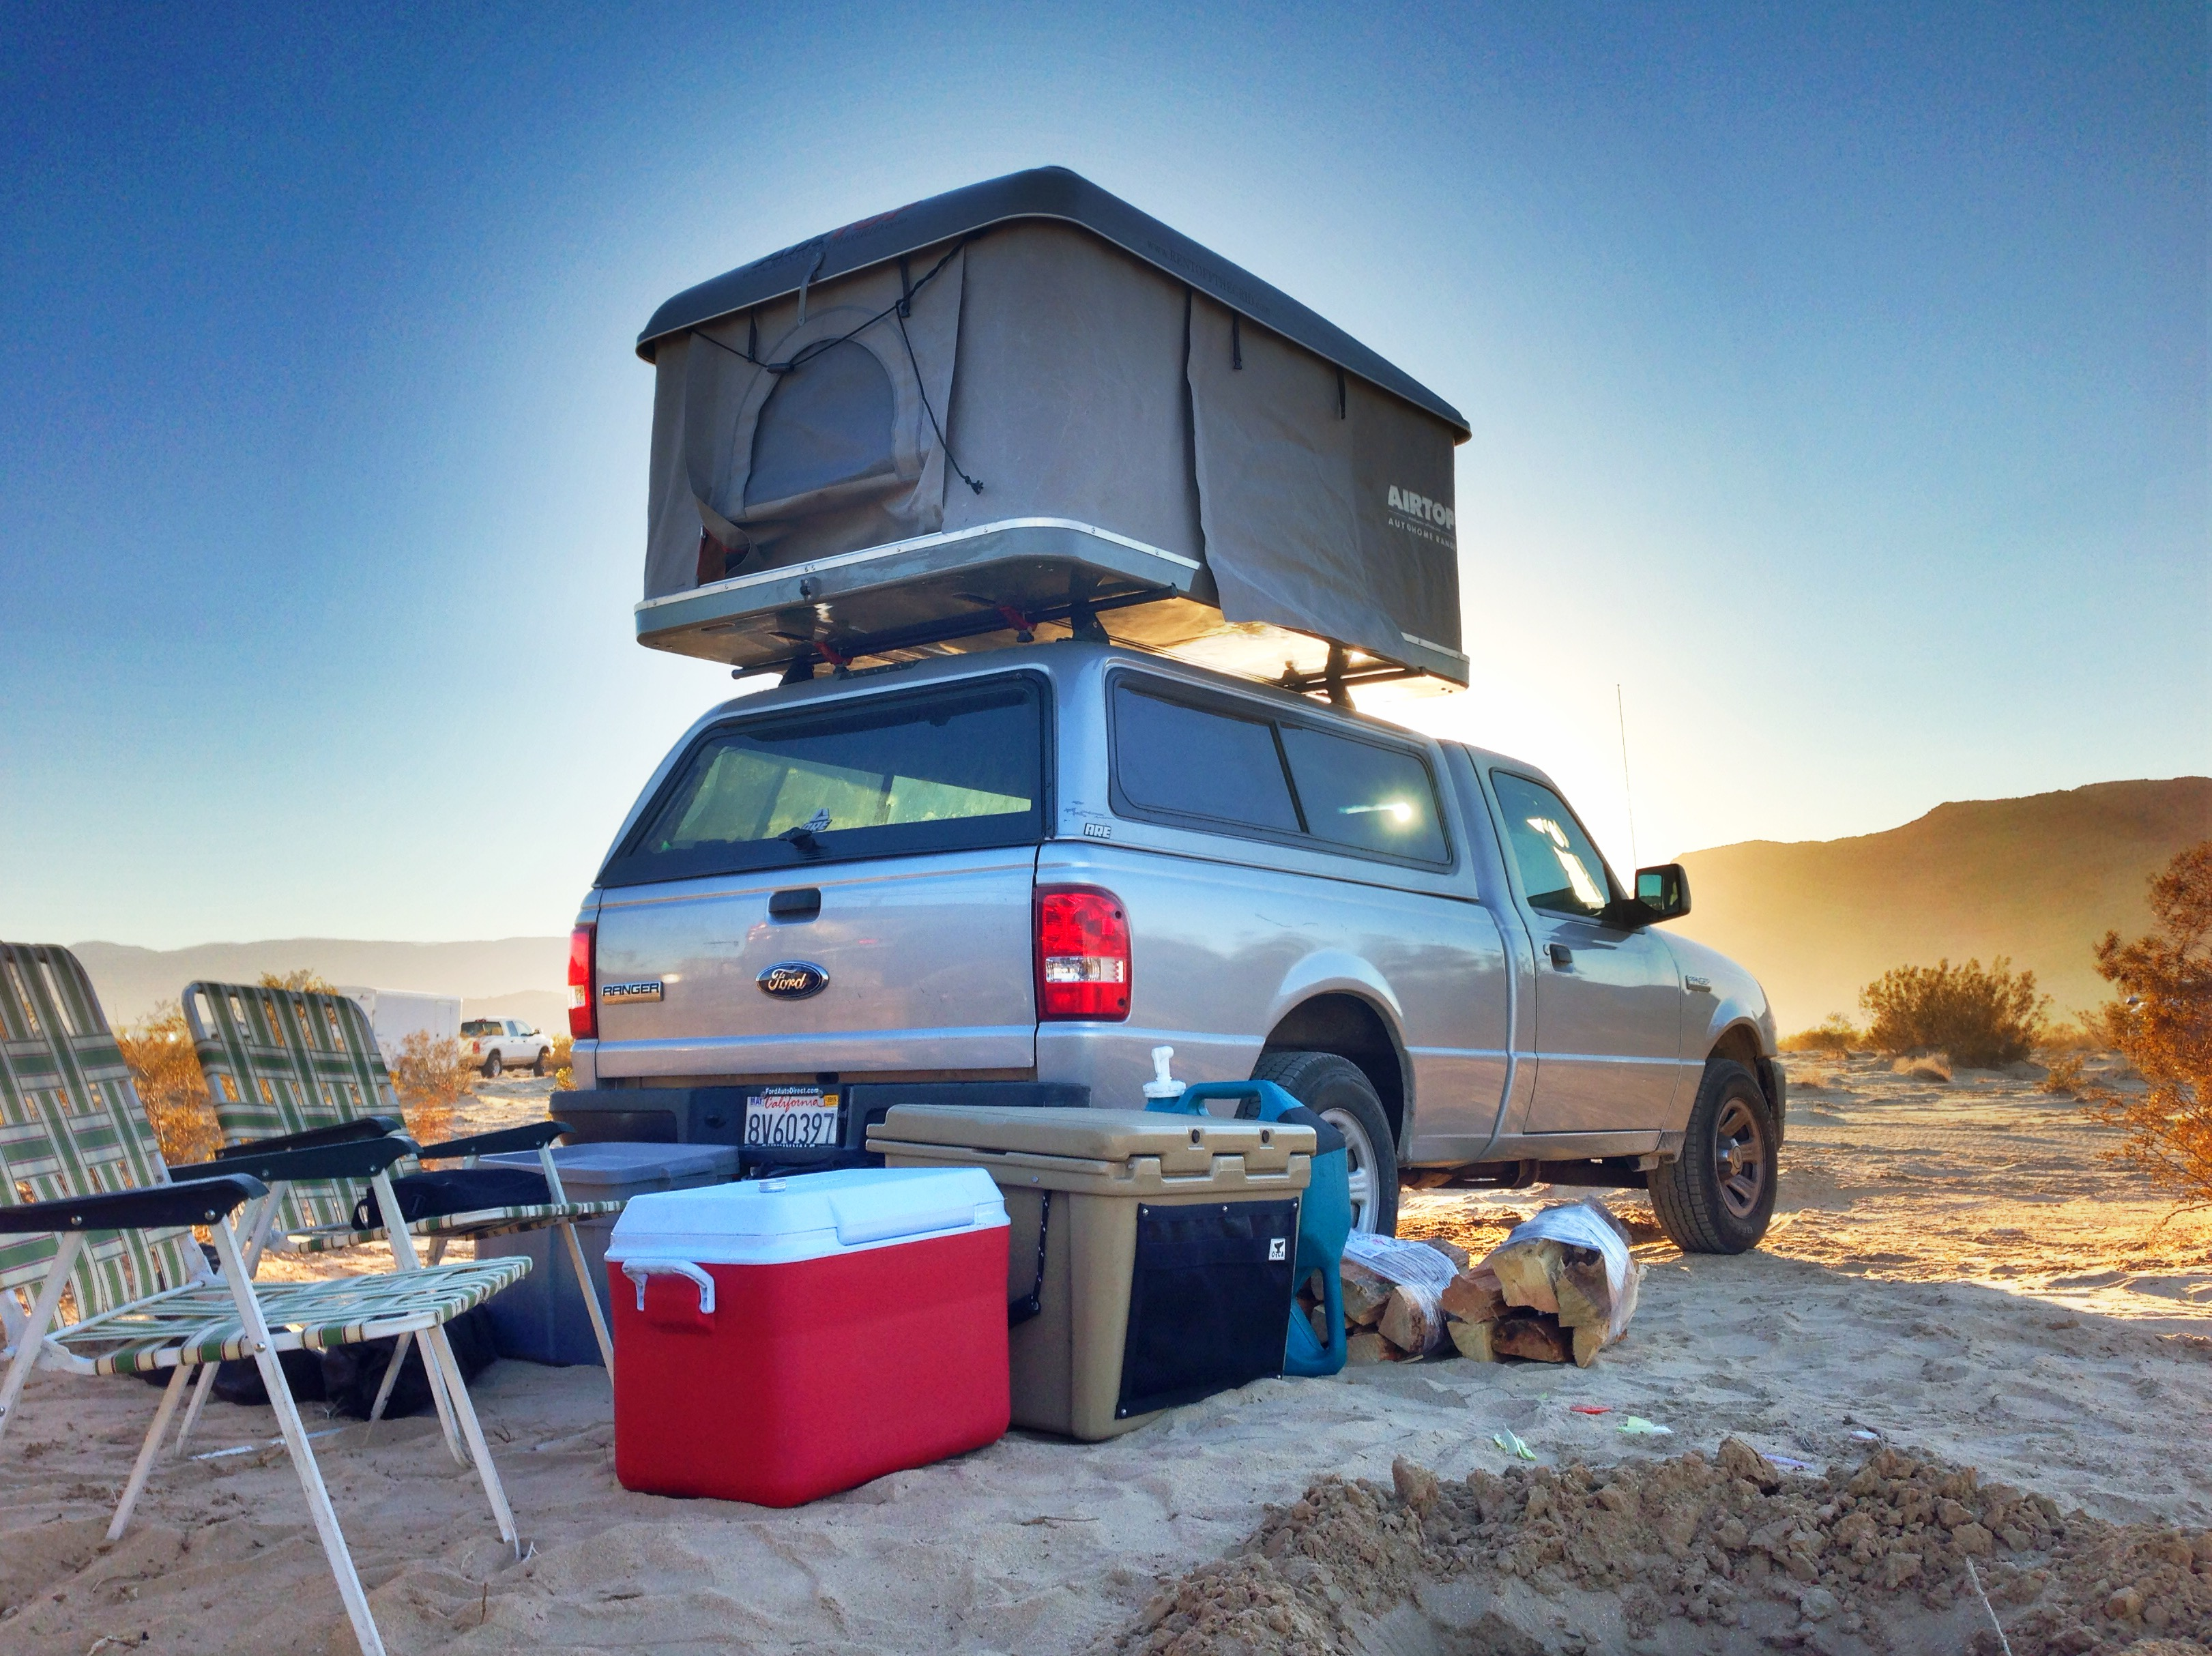 Roof Top Tent Features Off The Grid Rentals